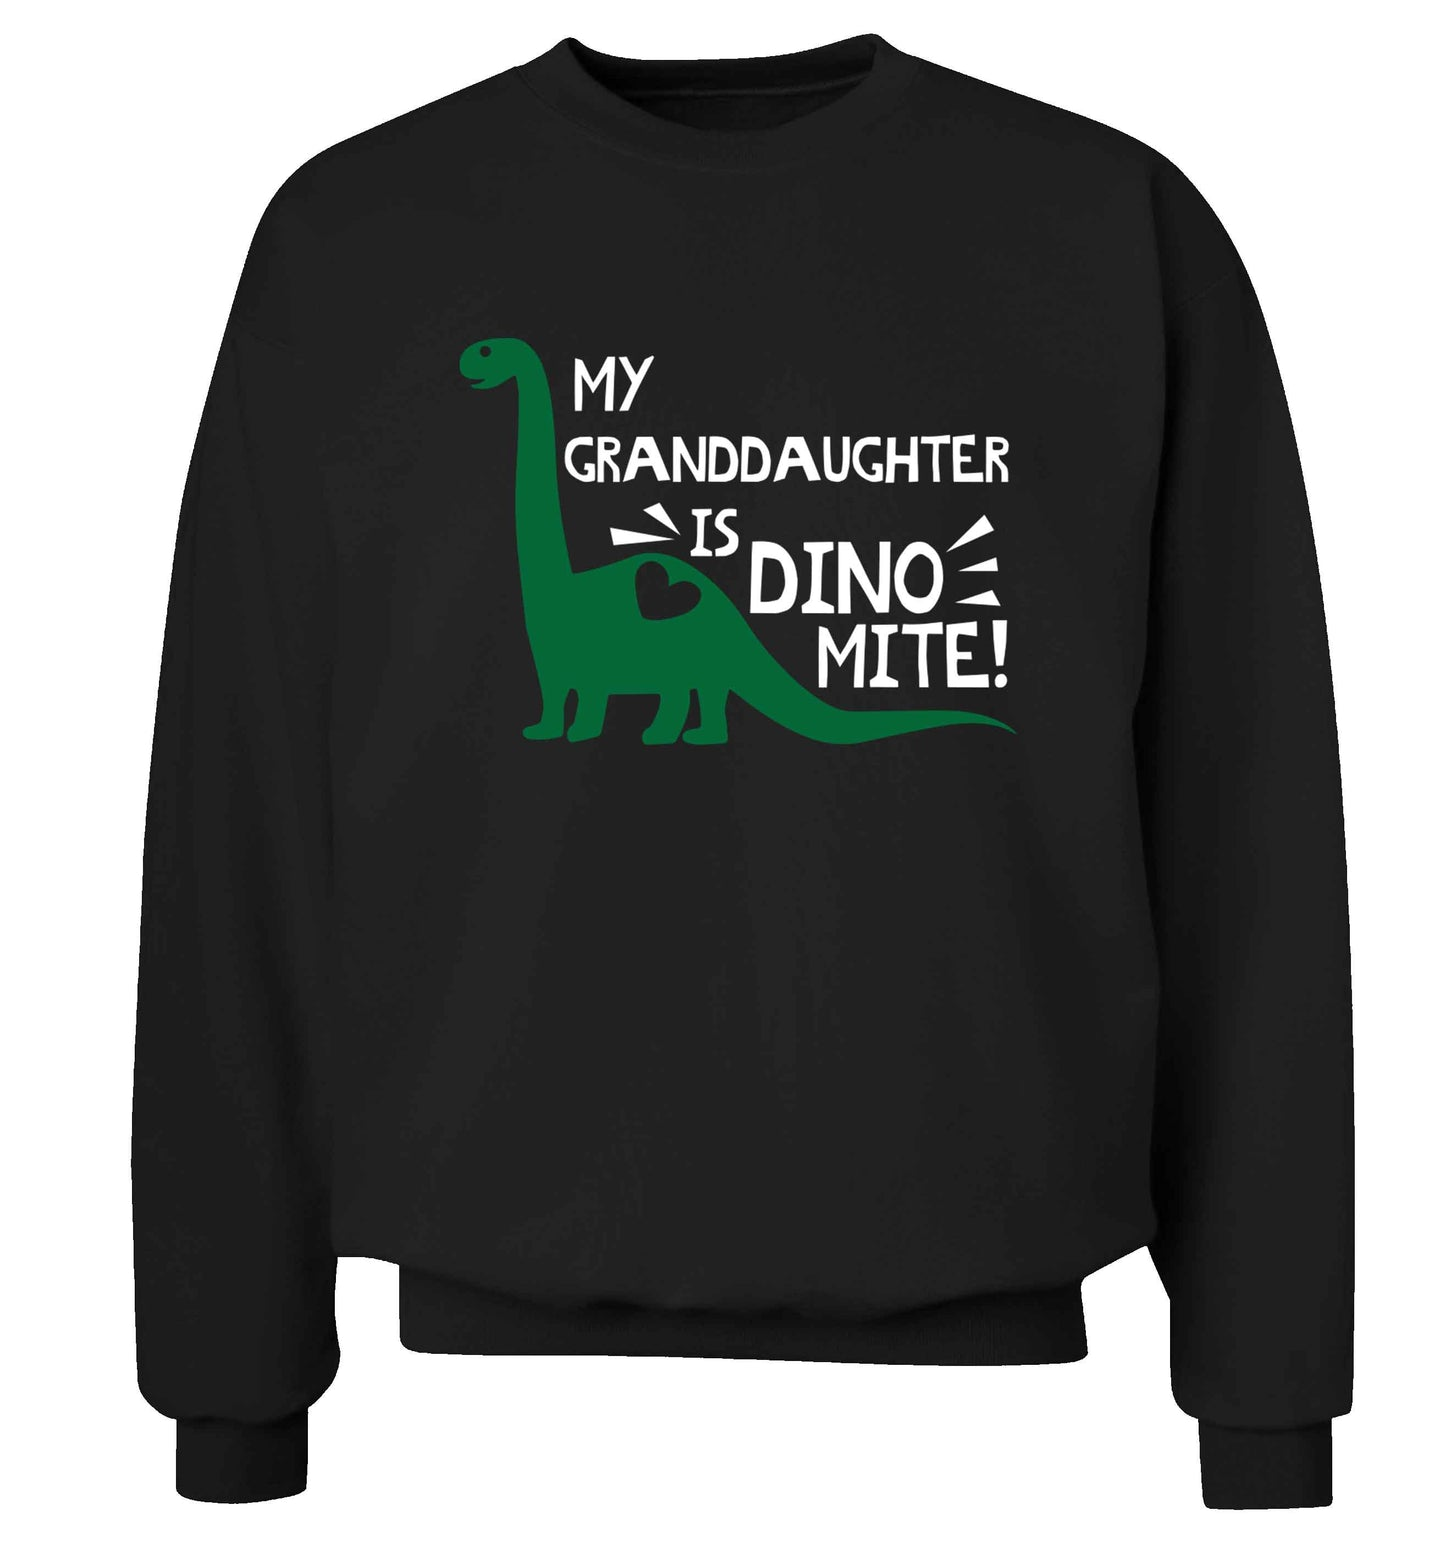 My granddaughter is dinomite! Adult's unisex black Sweater 2XL